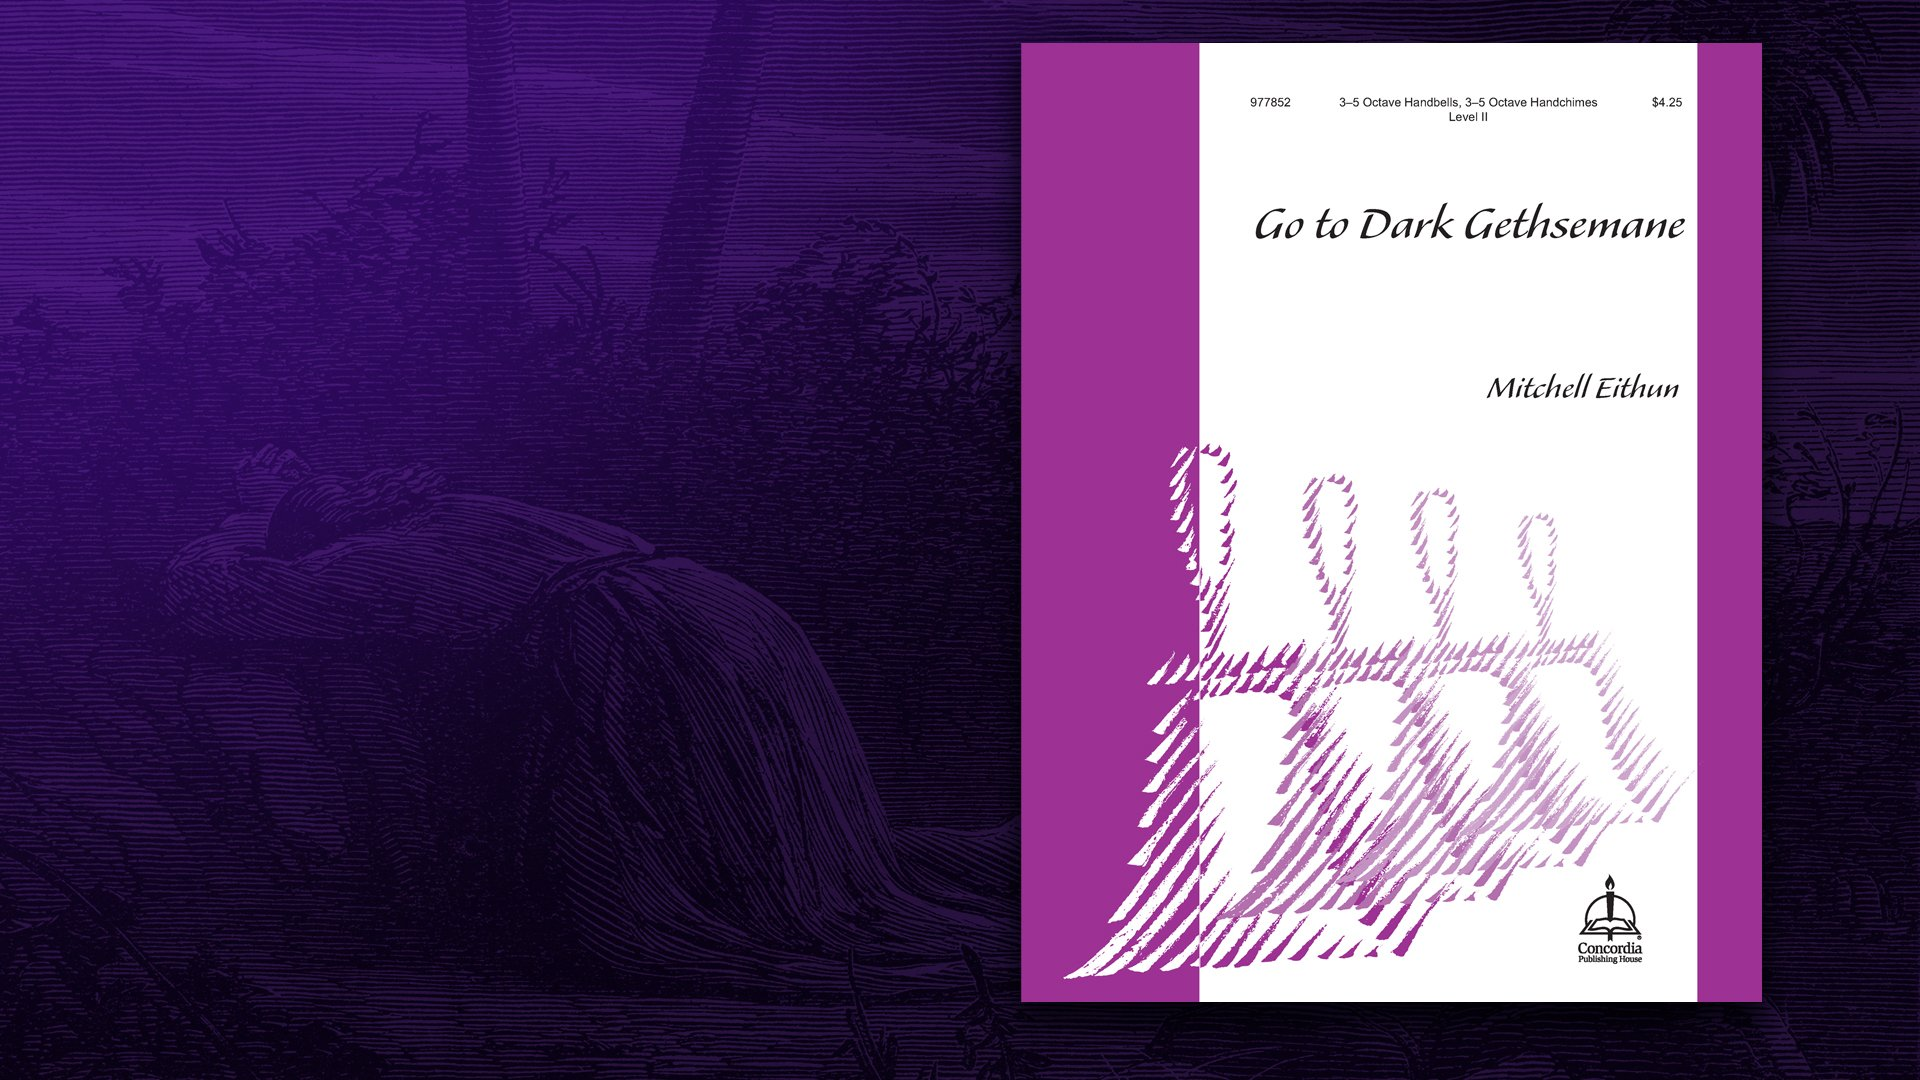 Music of the Month: Go to Dark Gethsemane